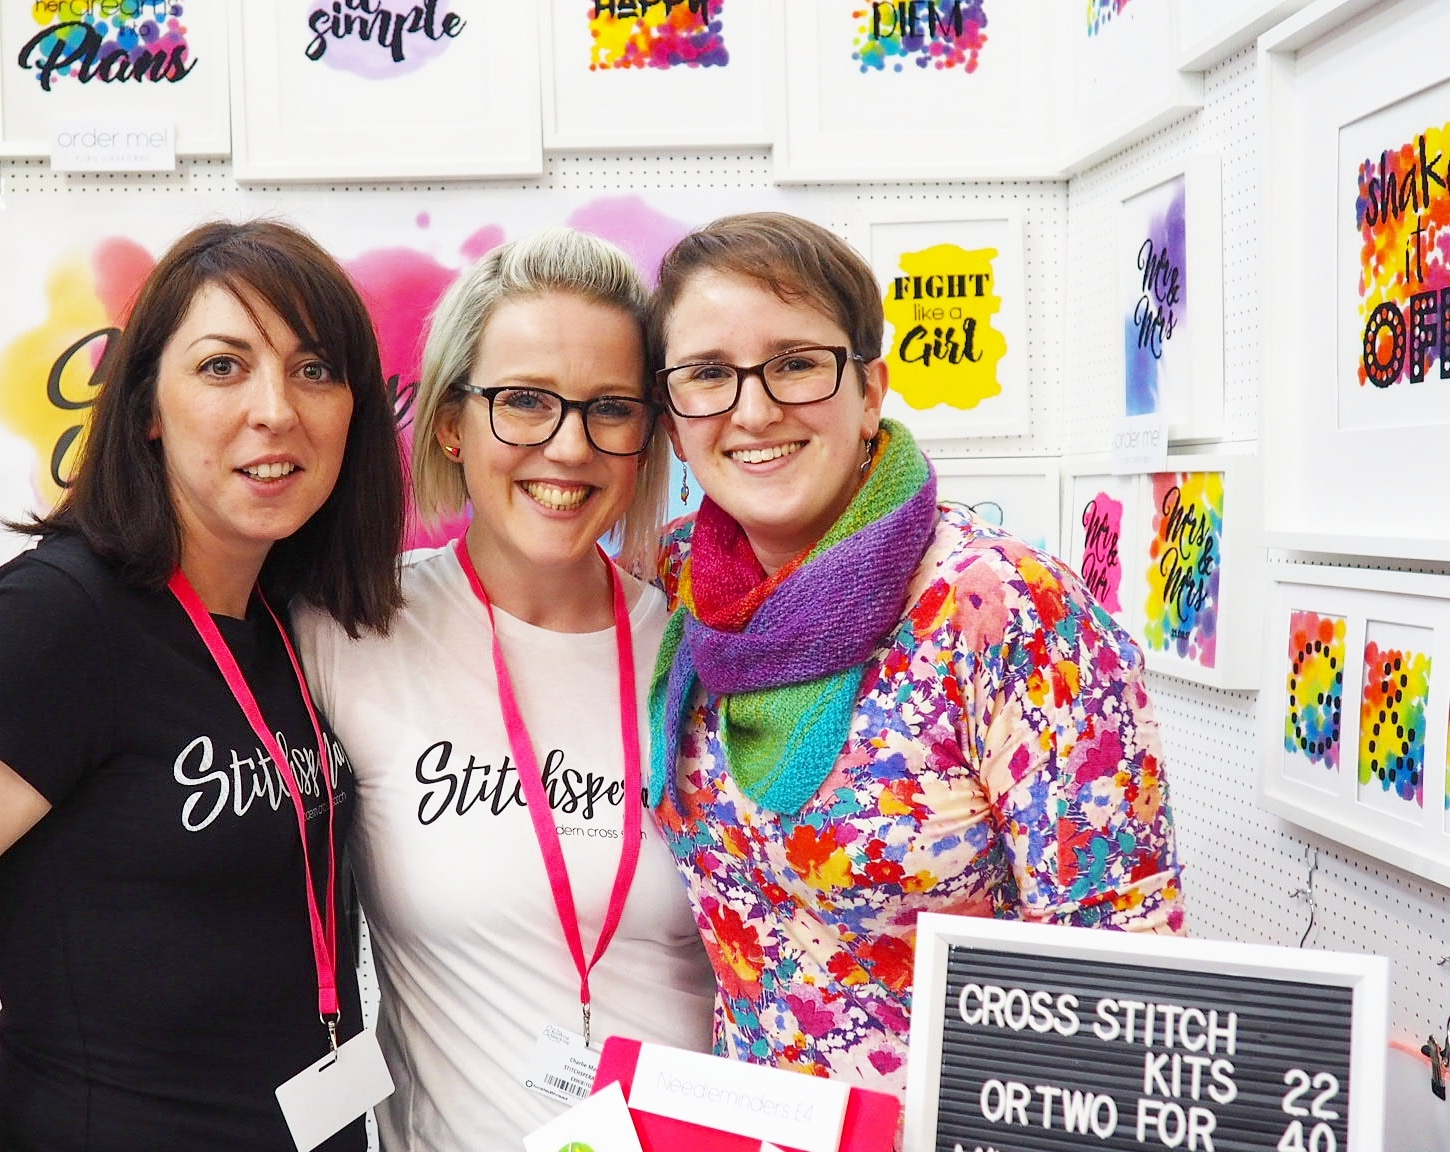 Meeting Charlie (in the middle) at the Spring Knitting & Stitching Show